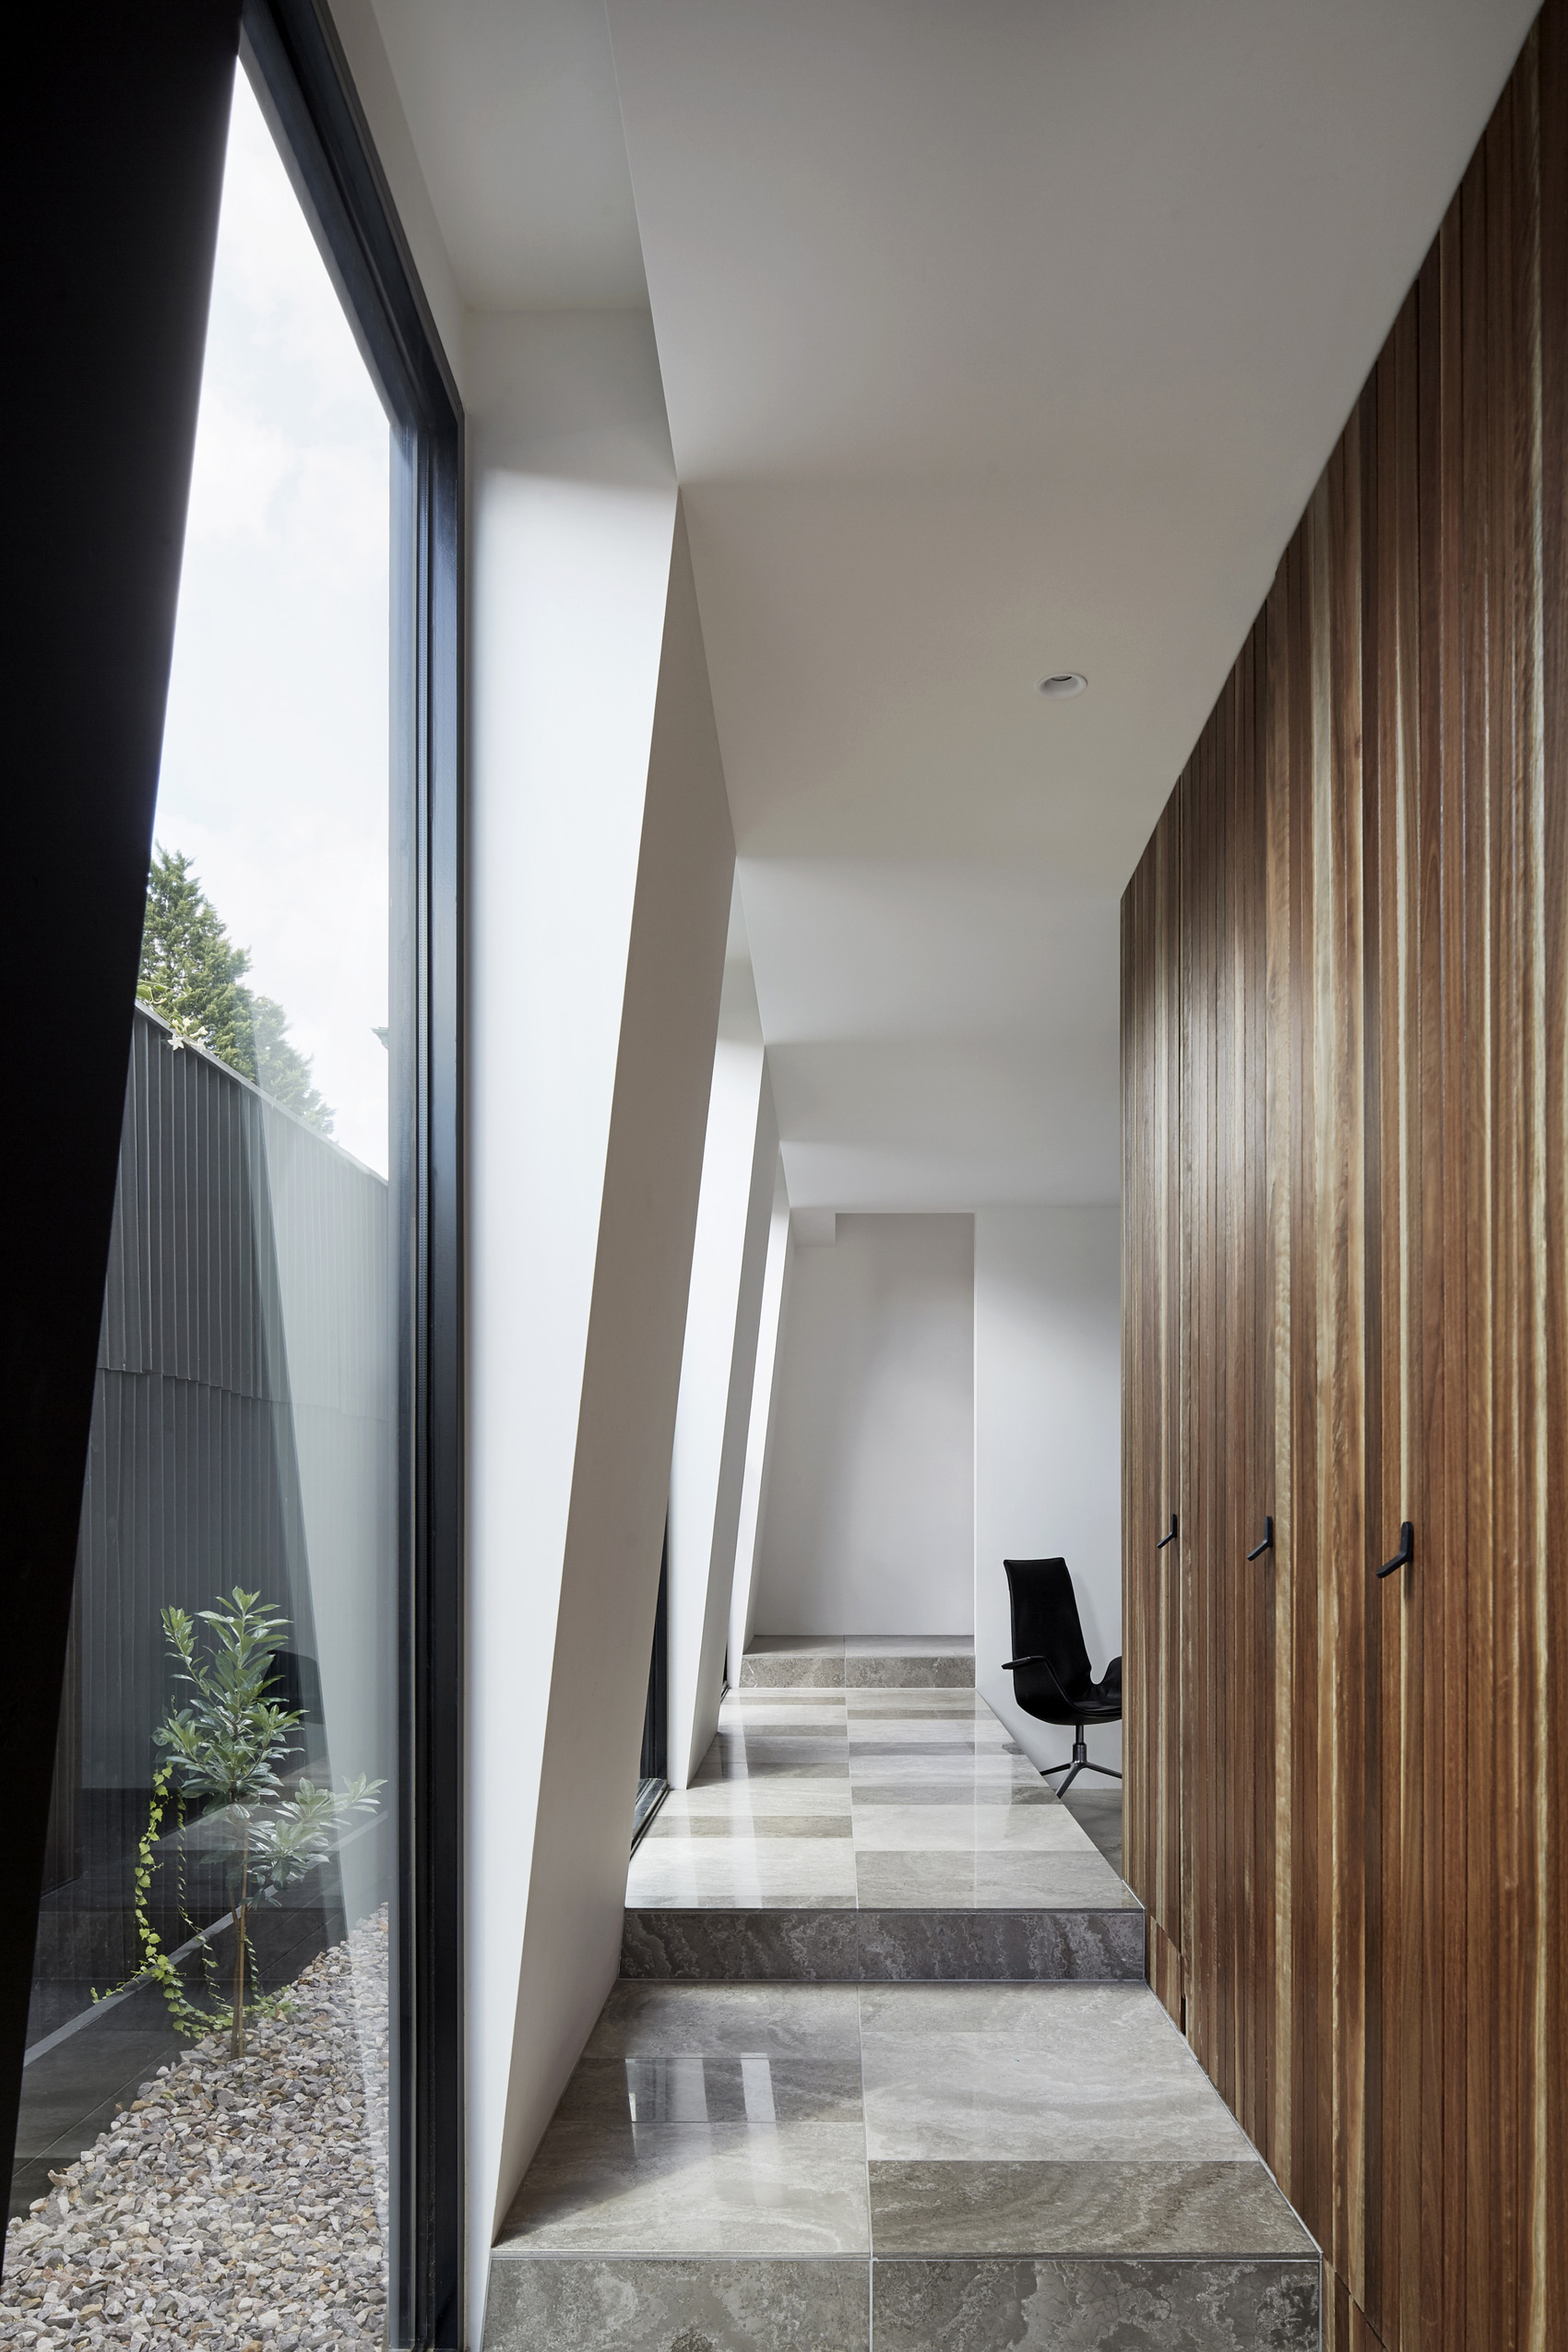 House 3 / Coy Yiontis Architects (11)